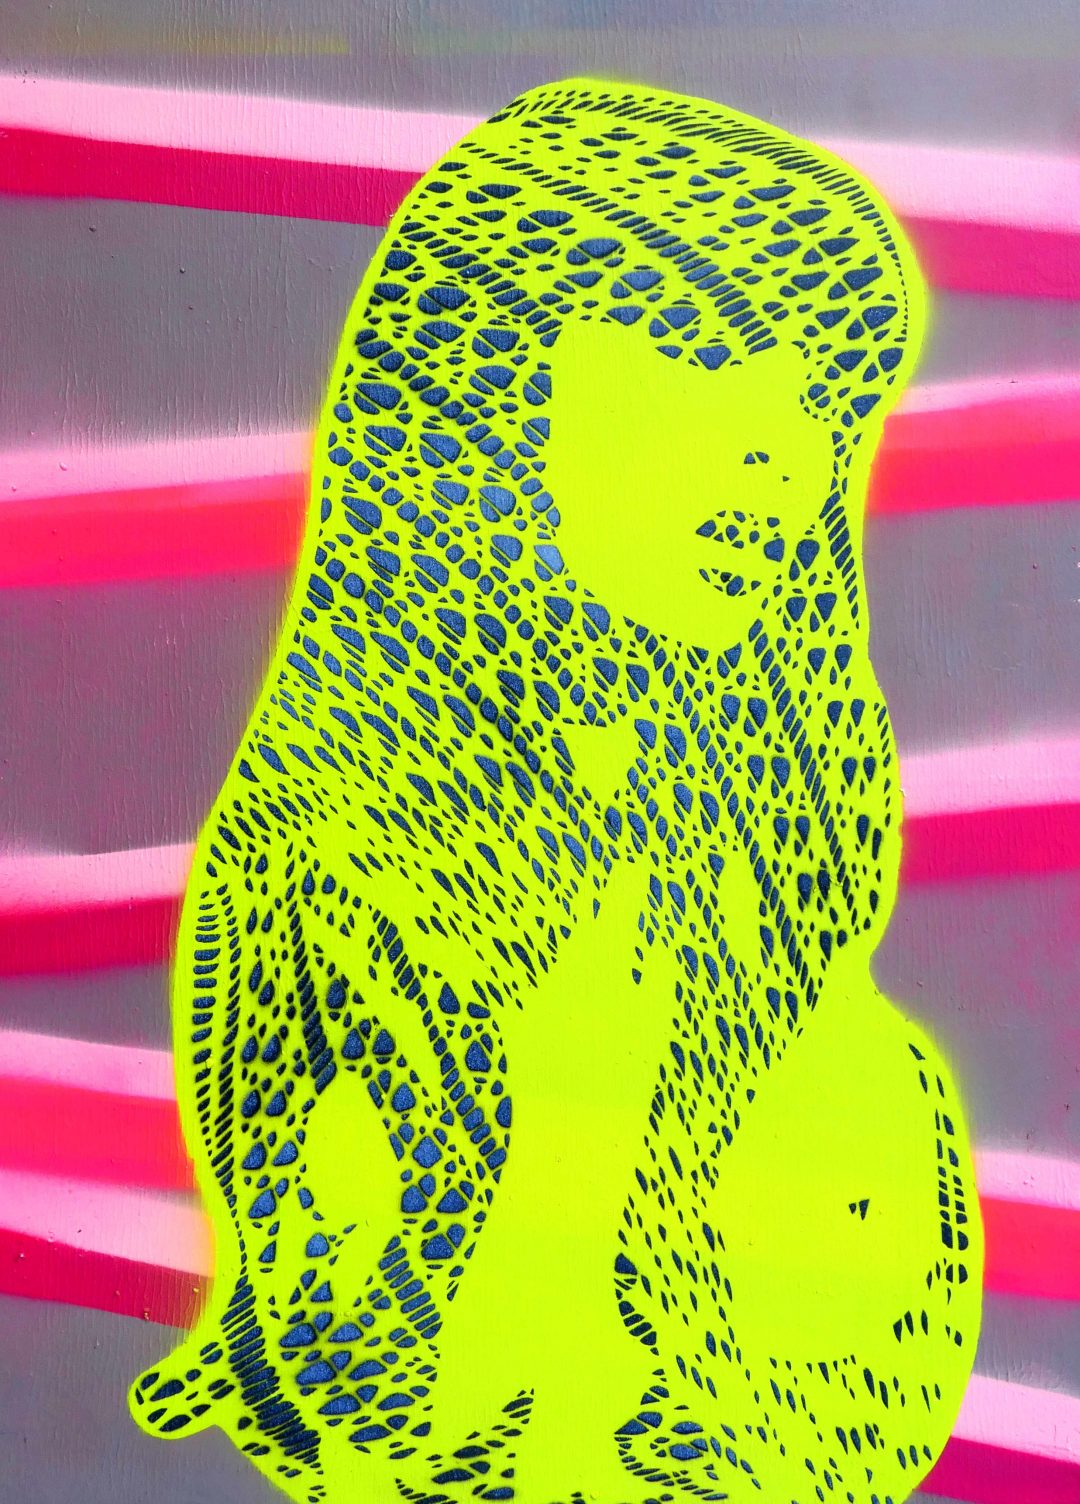 Stencil Artwork Ghost_2 fishnet tights